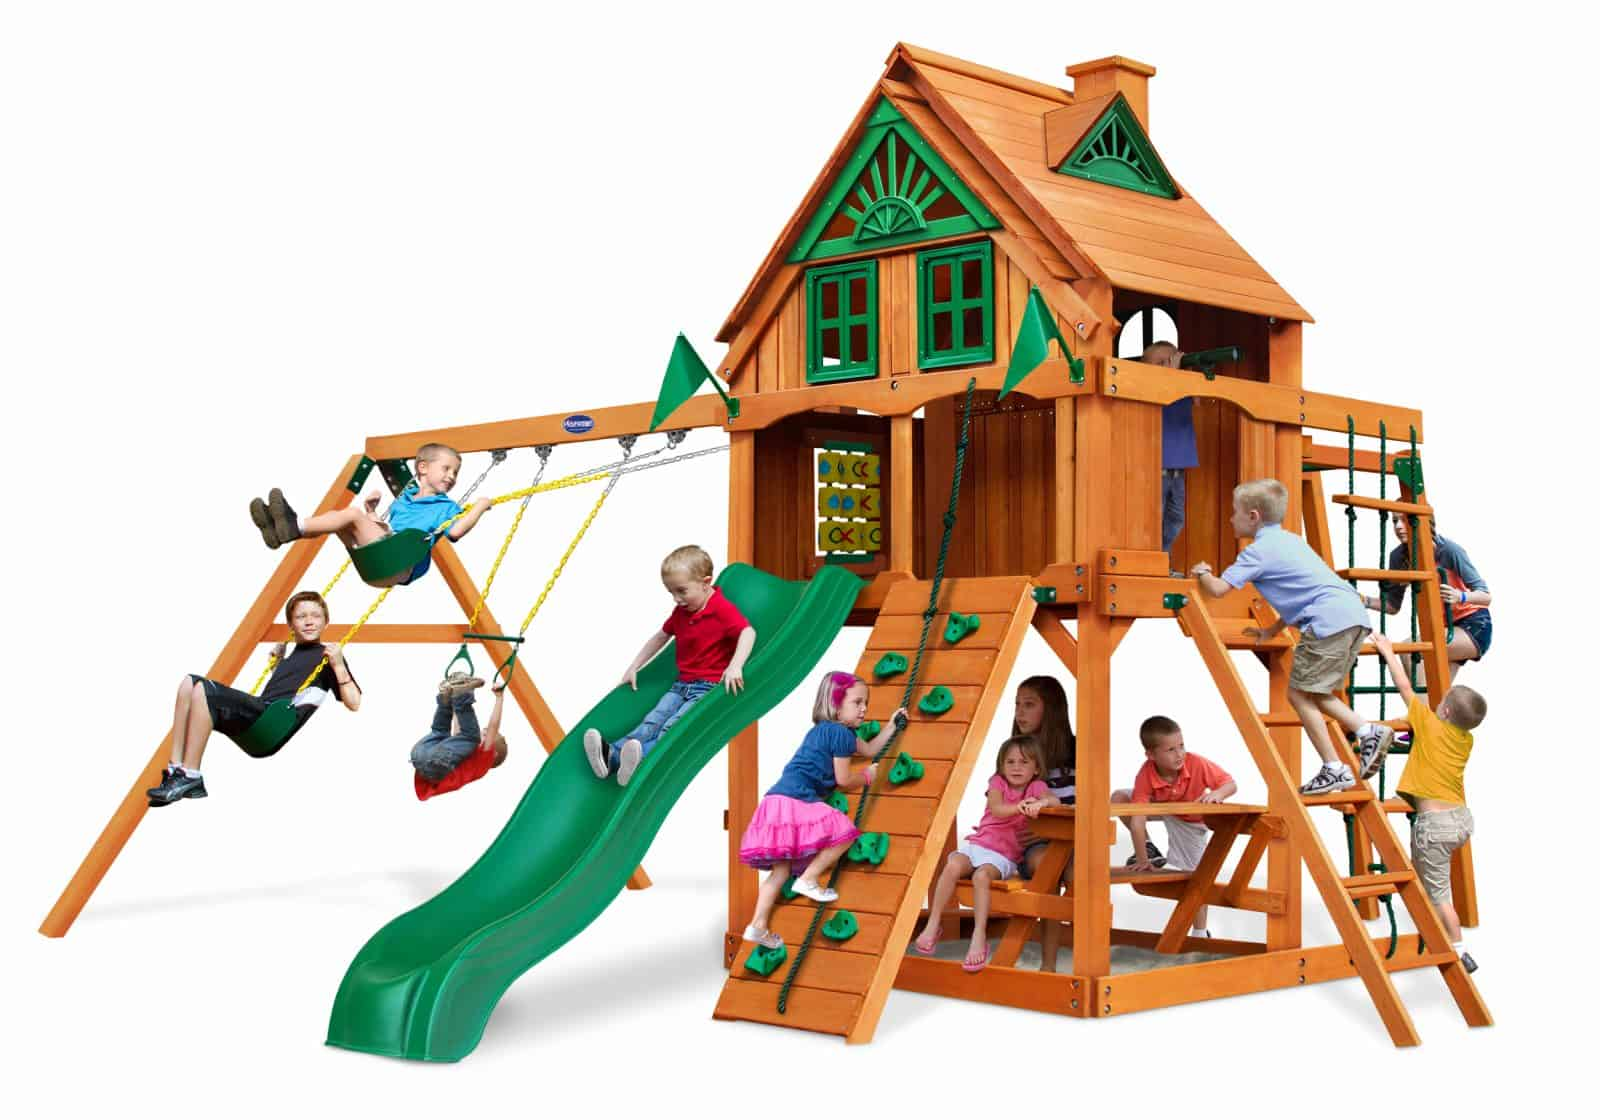 Cinnamon BEAR Fort Cayman Treehouse Fort Wooden Playset